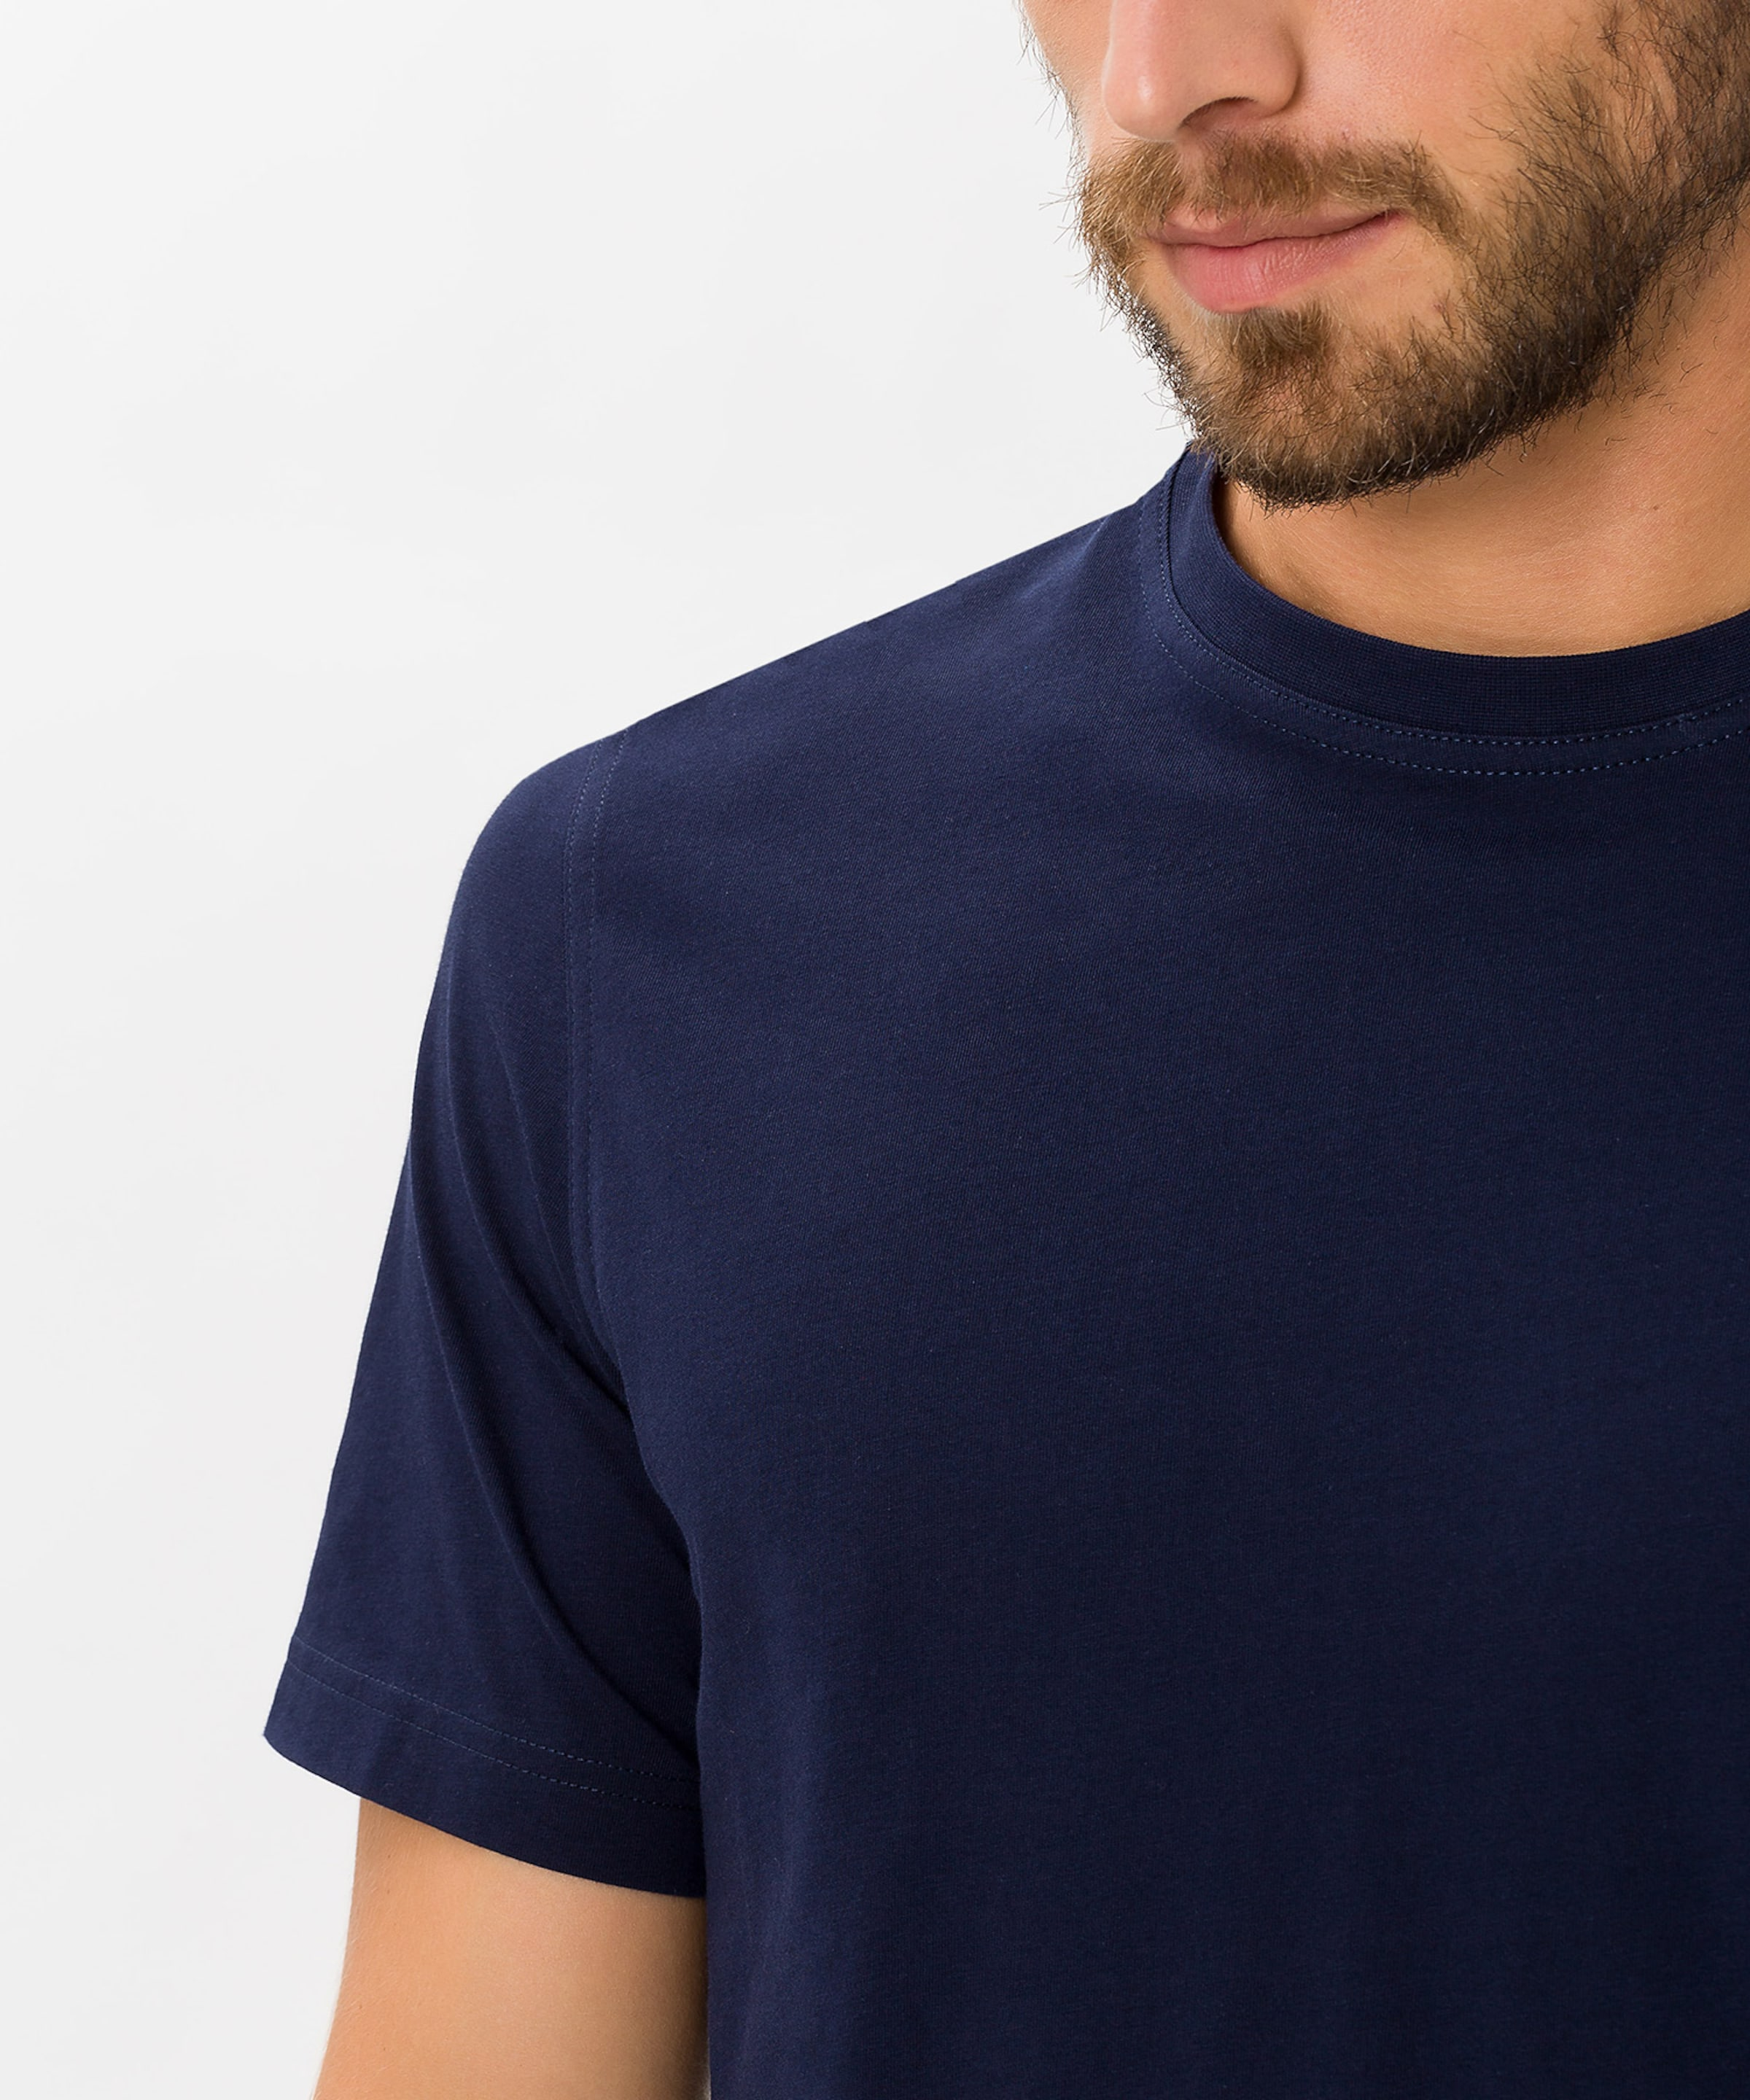 In Navy Brax T shirt 'tim' BdoerCWx